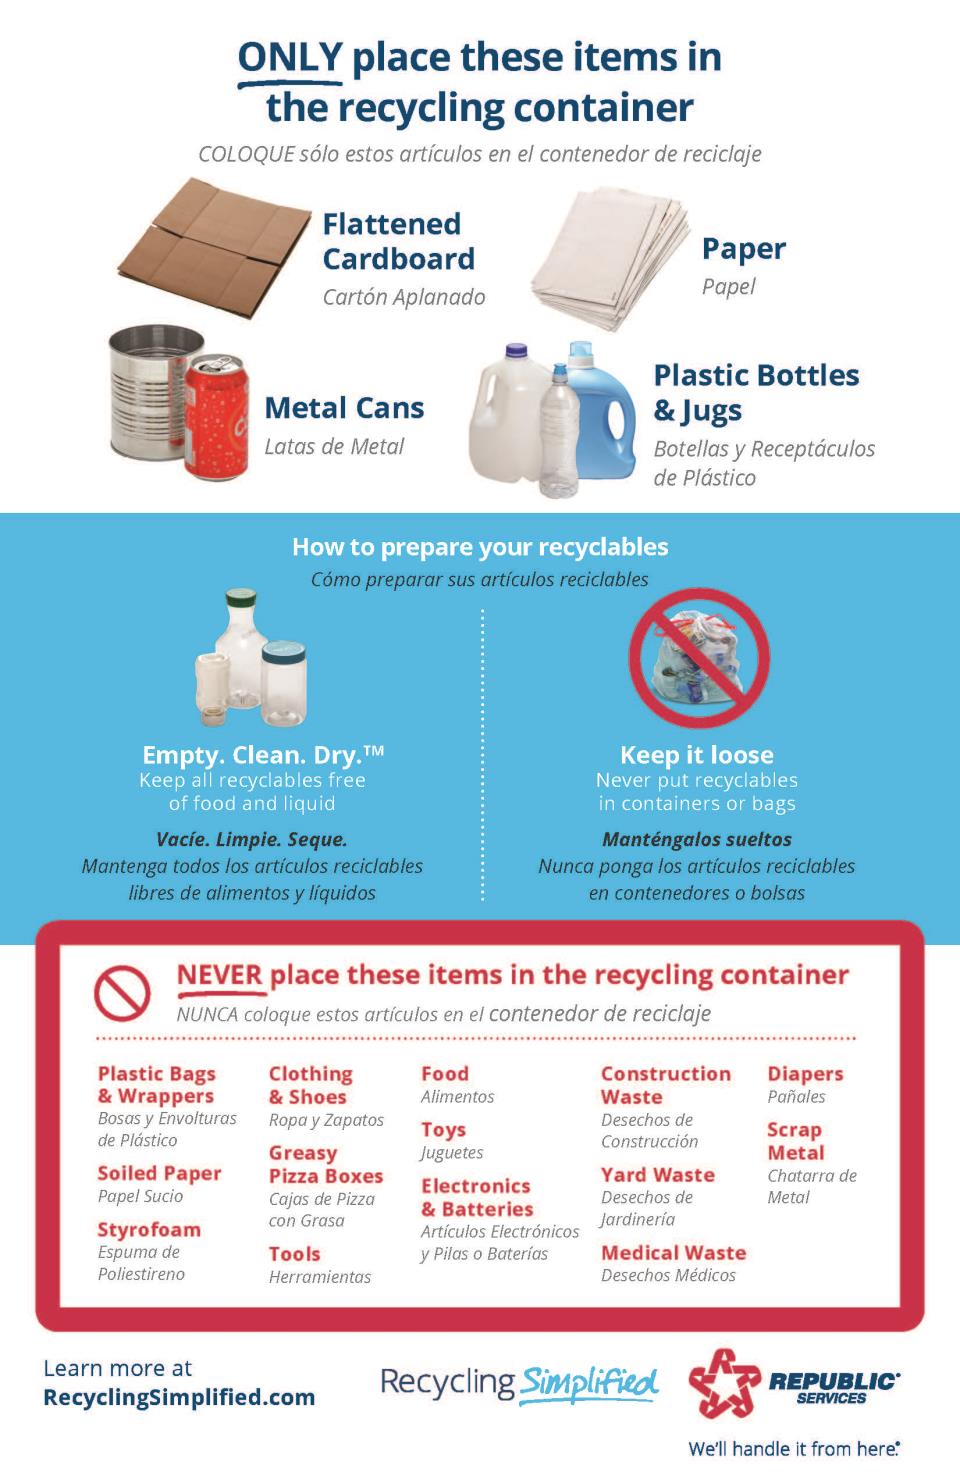 eng-spa-recycling-simplified-container-label-small-essential